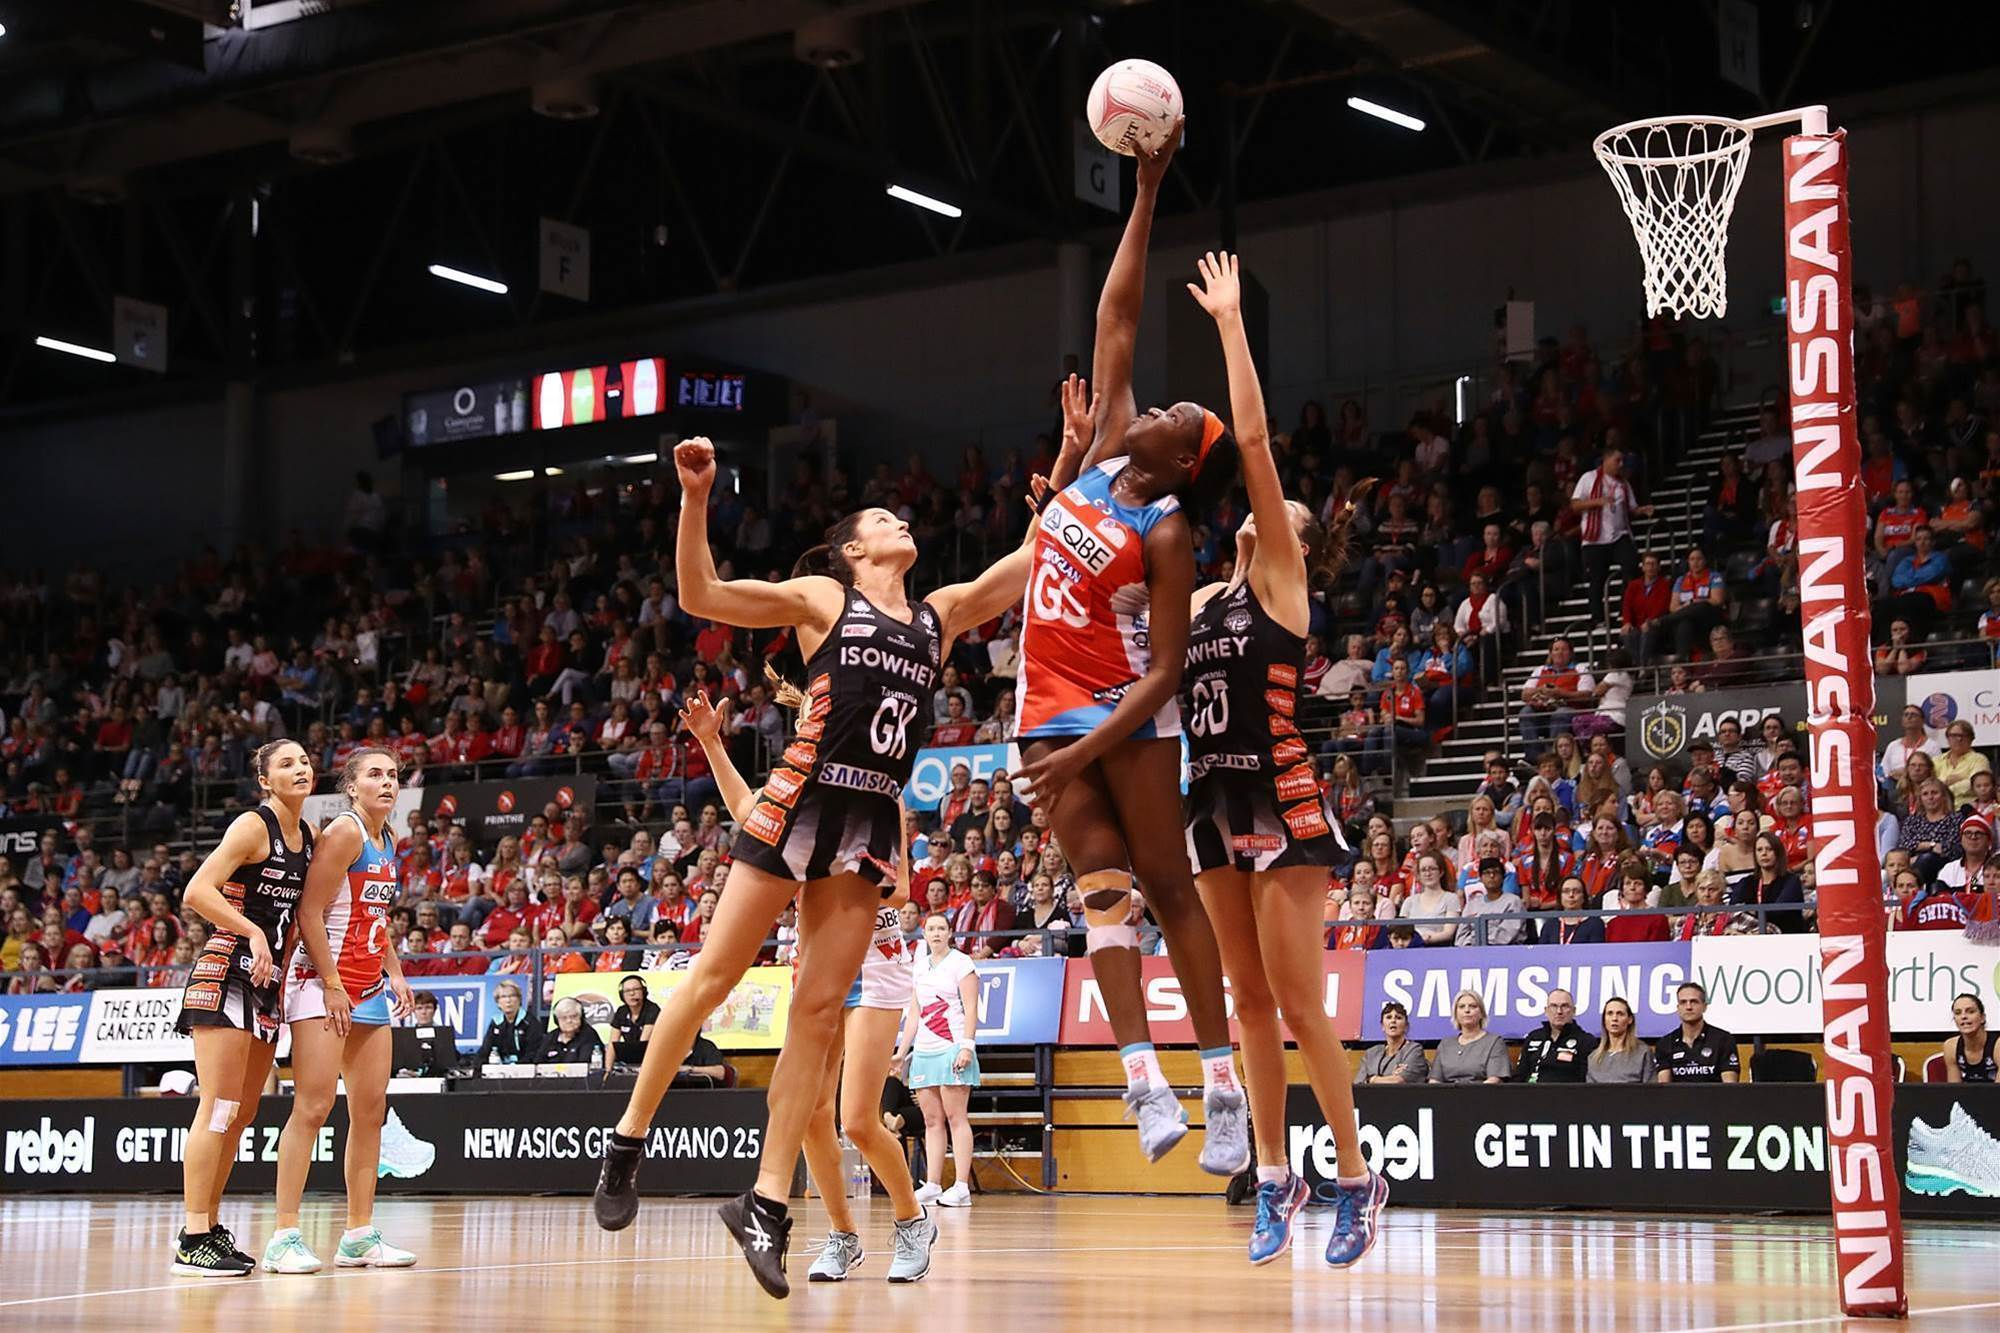 Super Netball pic special: Battles in round 5